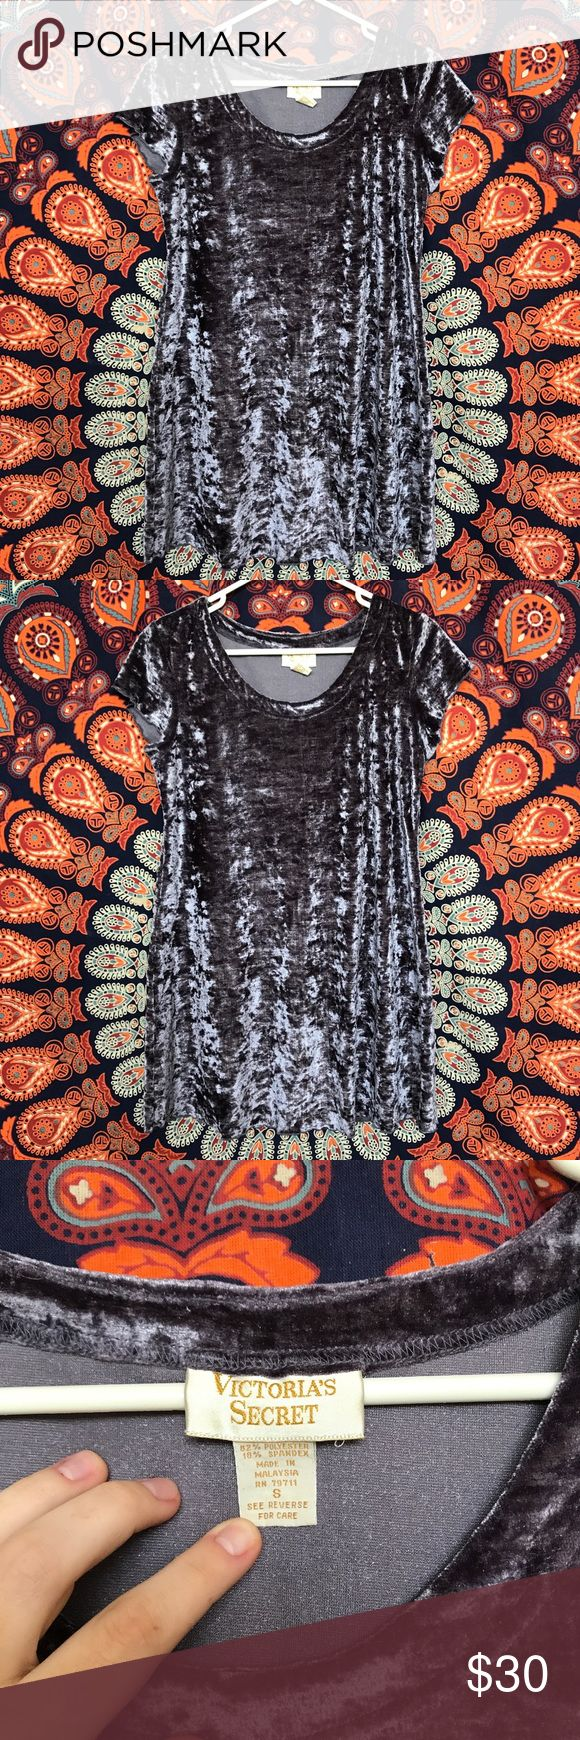 Vintage Victoria's Secret grey velvet dress Vintage gold label Victoria's Secret crushed velvet dress. The charcoal grey material is textured and even though this is vintage the velvet style is super trendy right now. Scoop neck with short cap sleeves. Flattering cut with sides that go inwards at the waist, defining the hips. Size small  Victoria Victorias Vs nightie nighty pjs pajamas nightgown night gown babydoll baby doll soft velvety neckline skater fit fitted form shape cap sleeved…